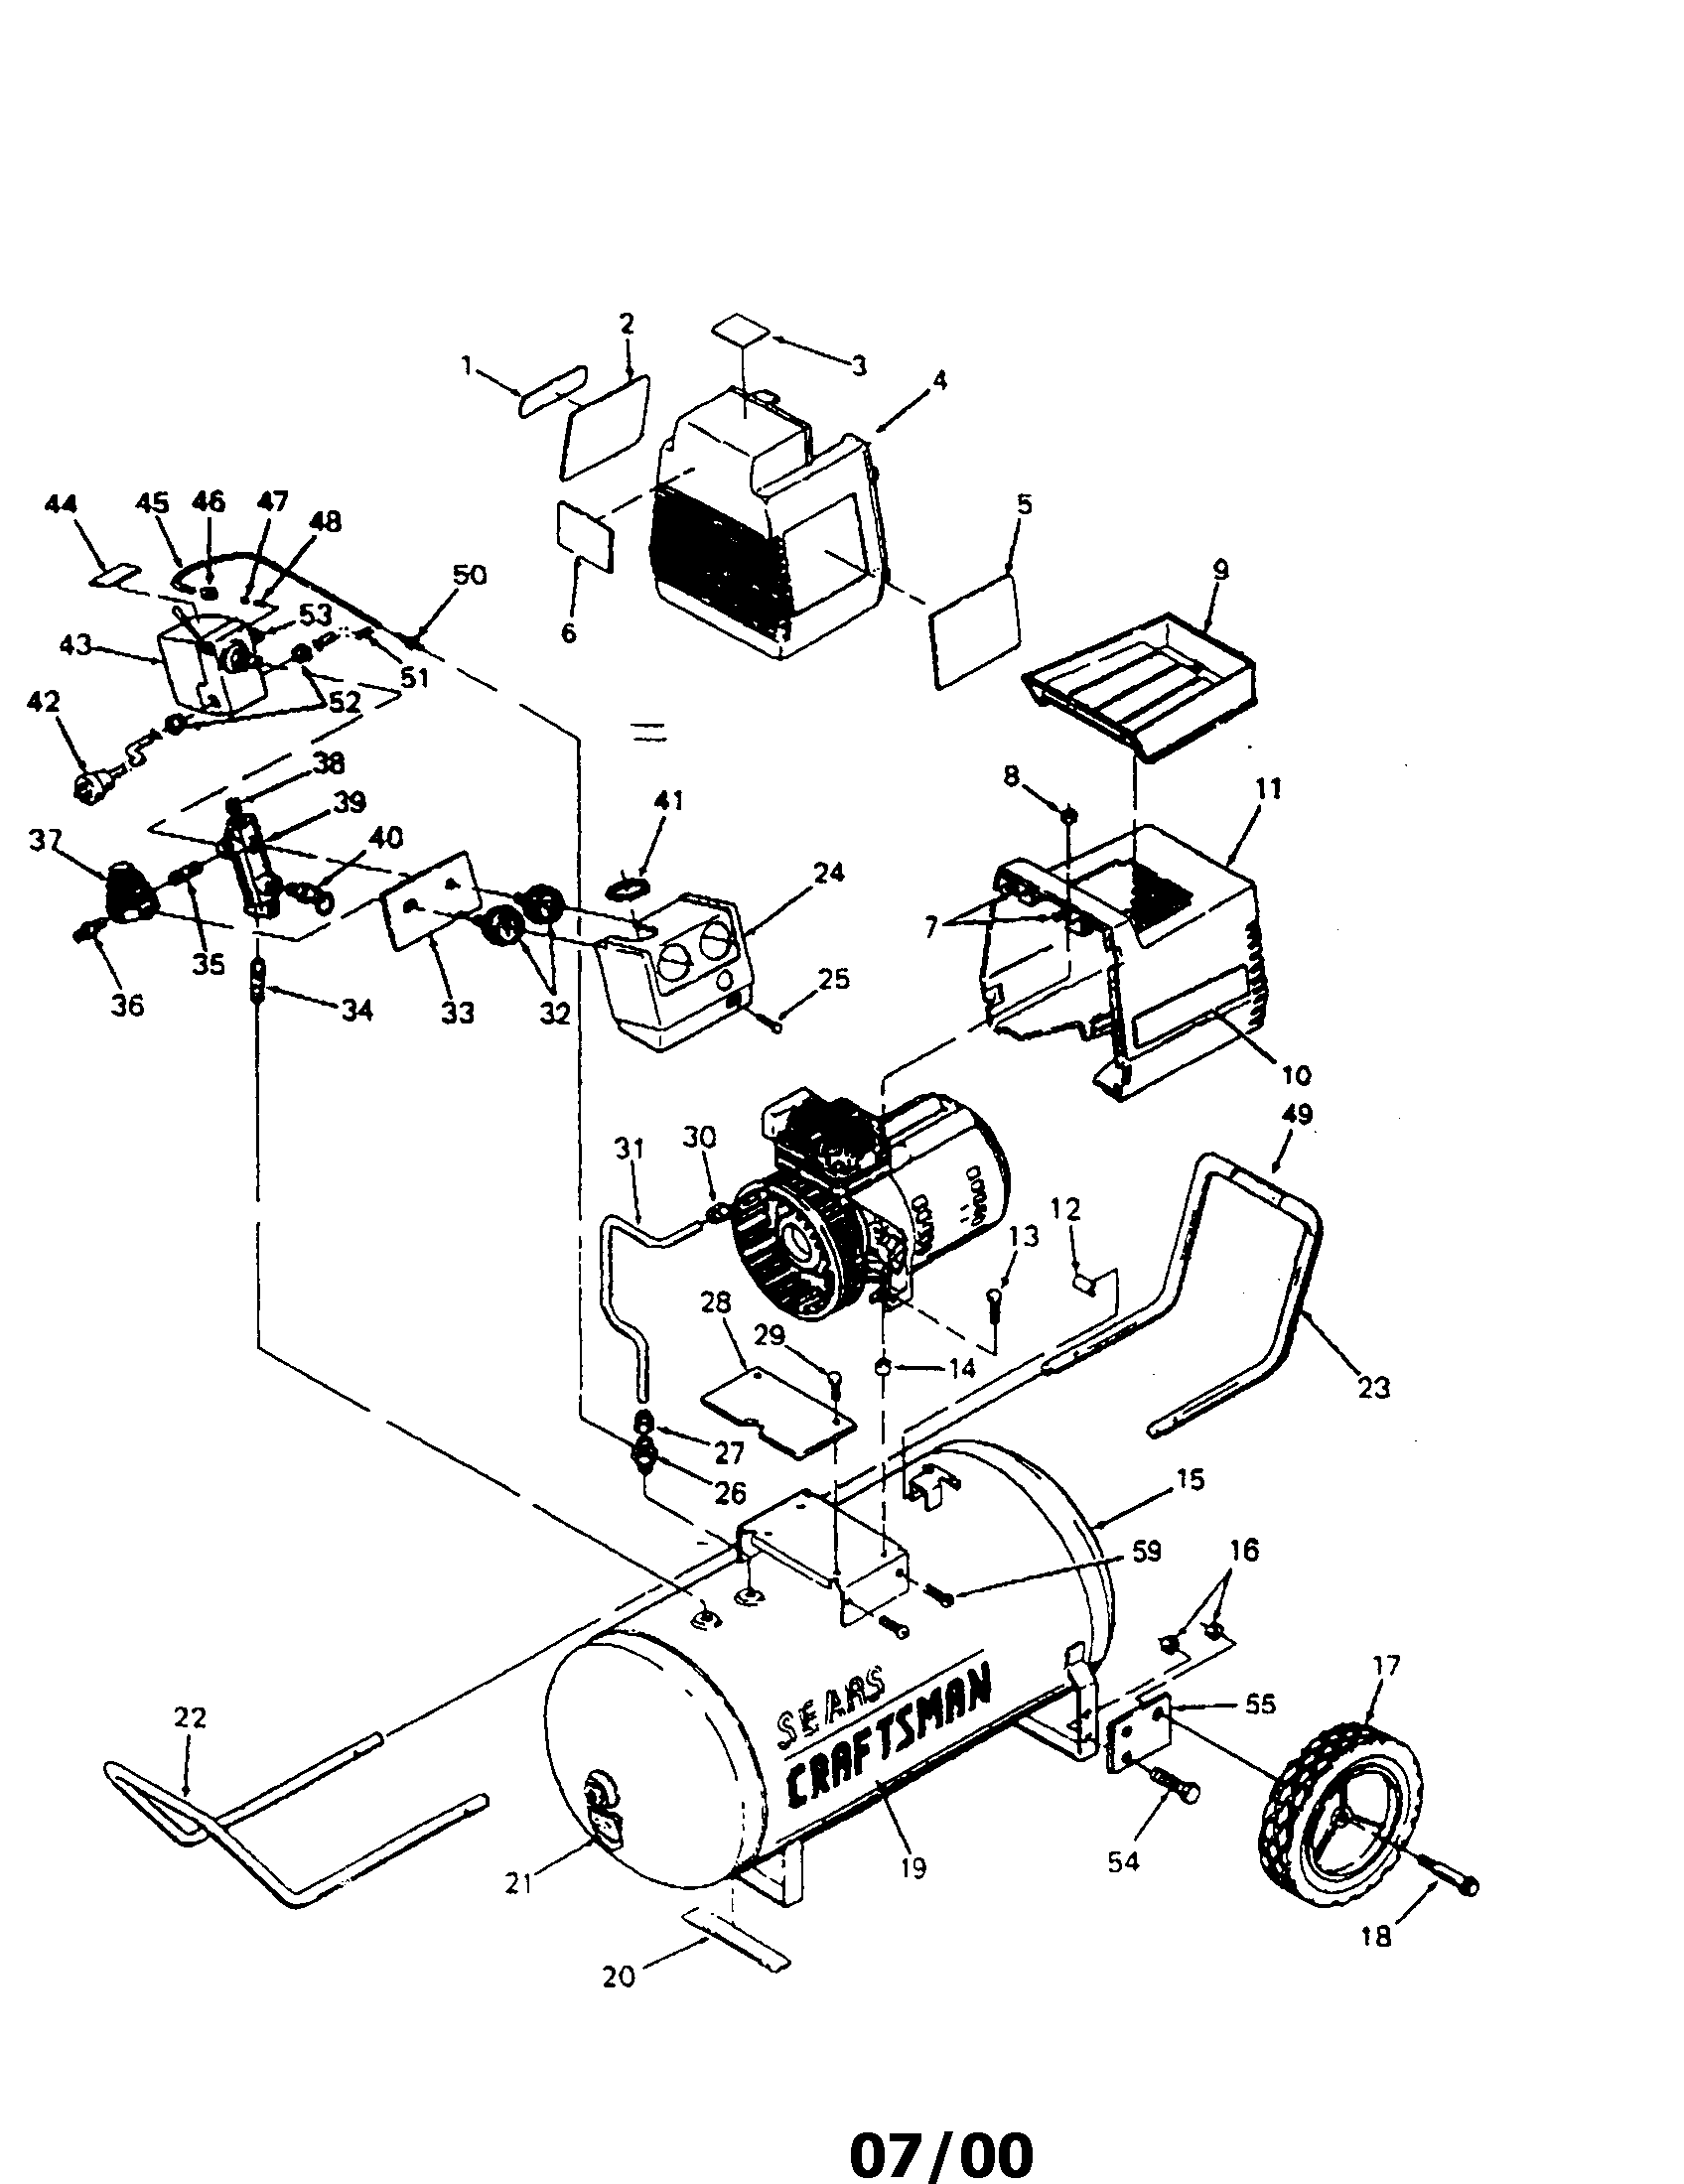 919.153231_craftsman_compressor_parts sears craftsman 919 153231 air compressor parts wiring diagram for craftsman air compressor at edmiracle.co